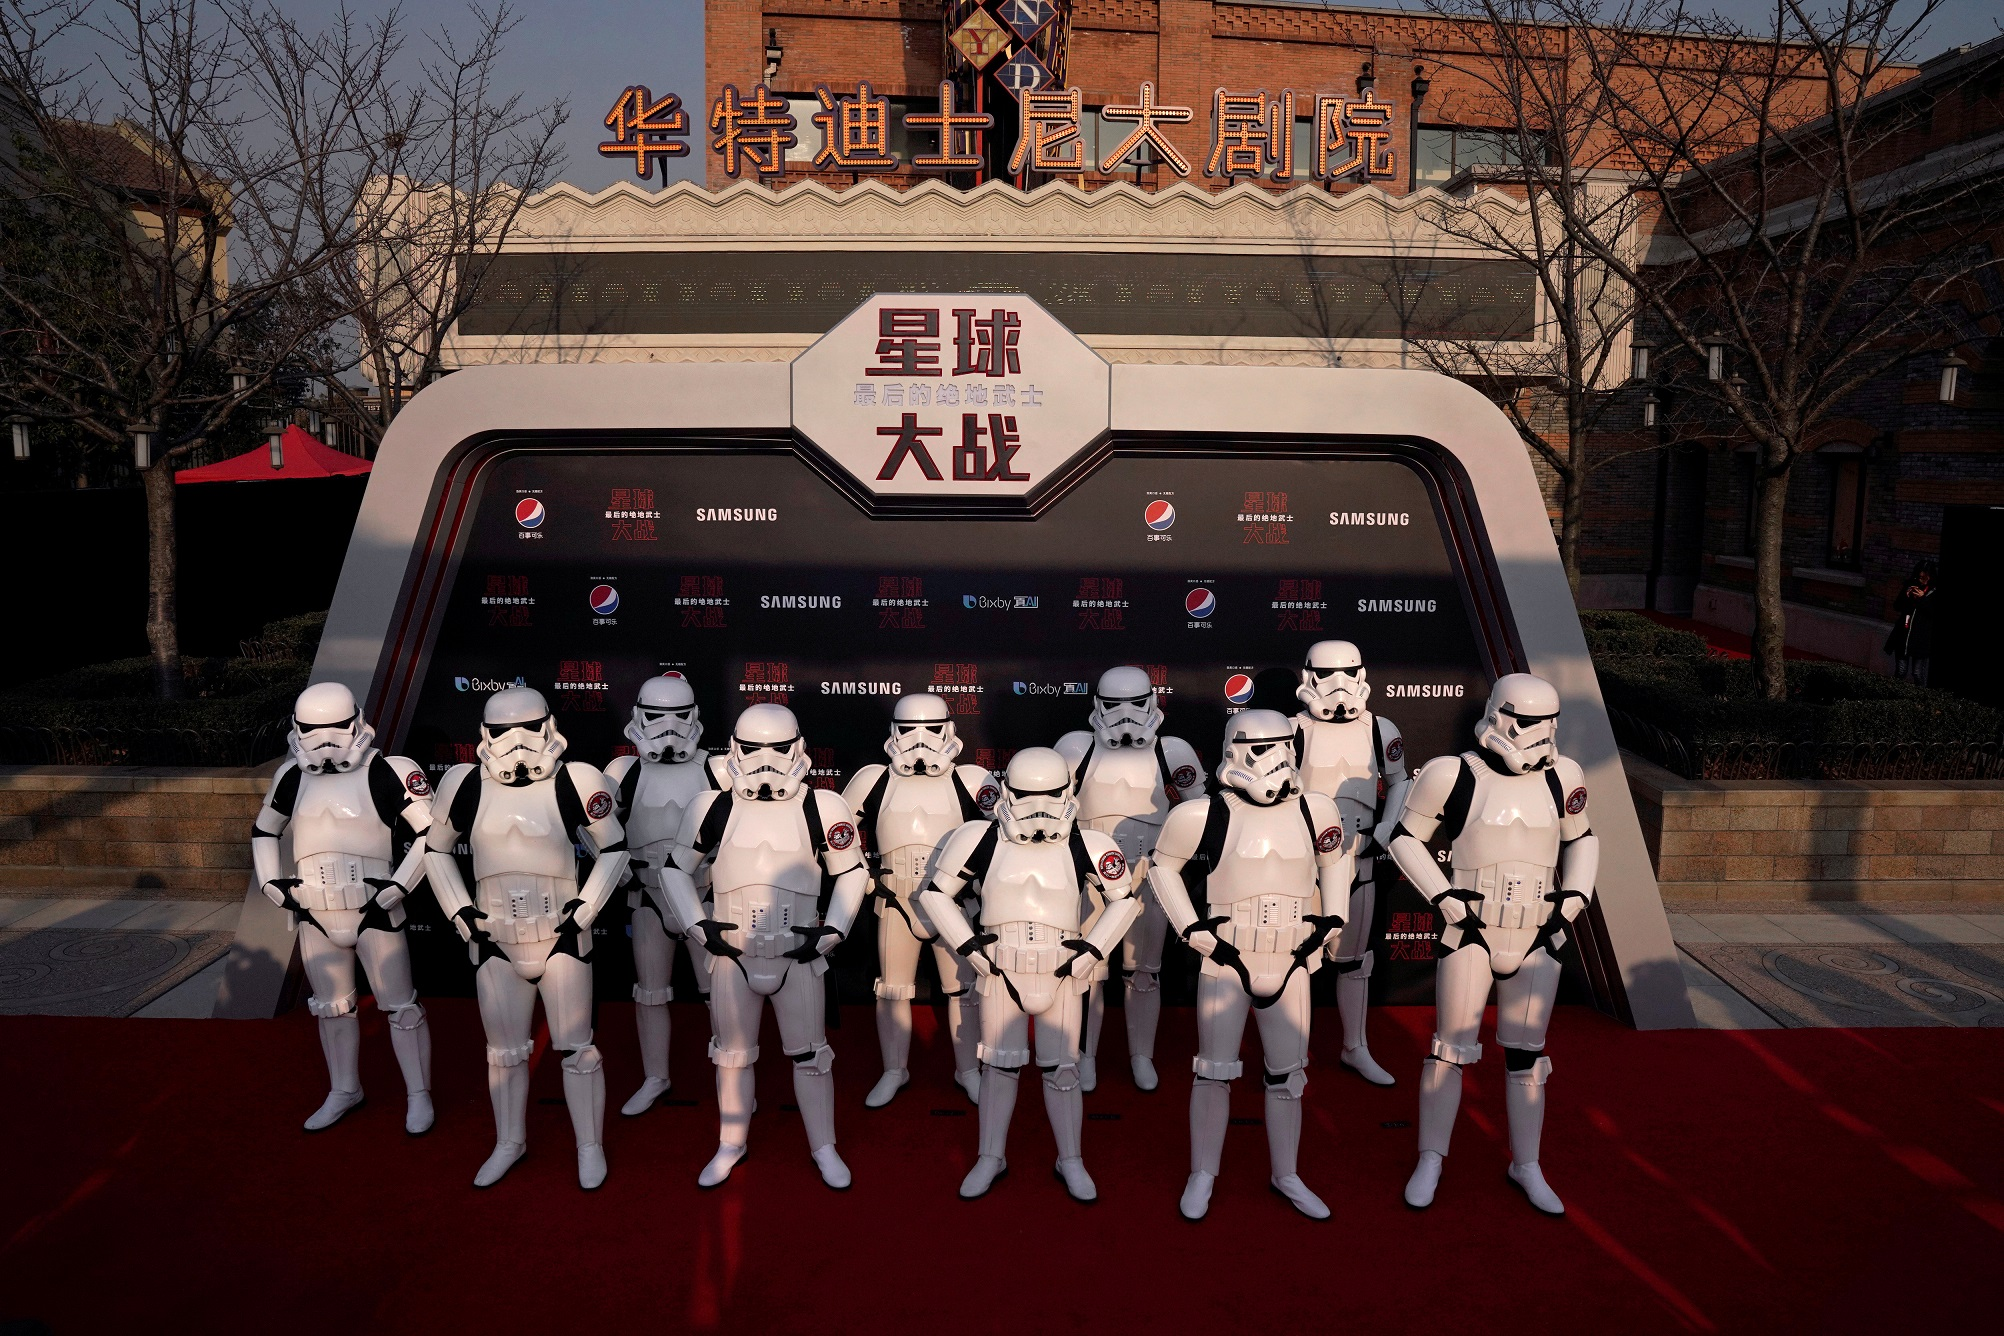 Piracy crackdown boosts China's cinema sales - Nikkei Asian Review